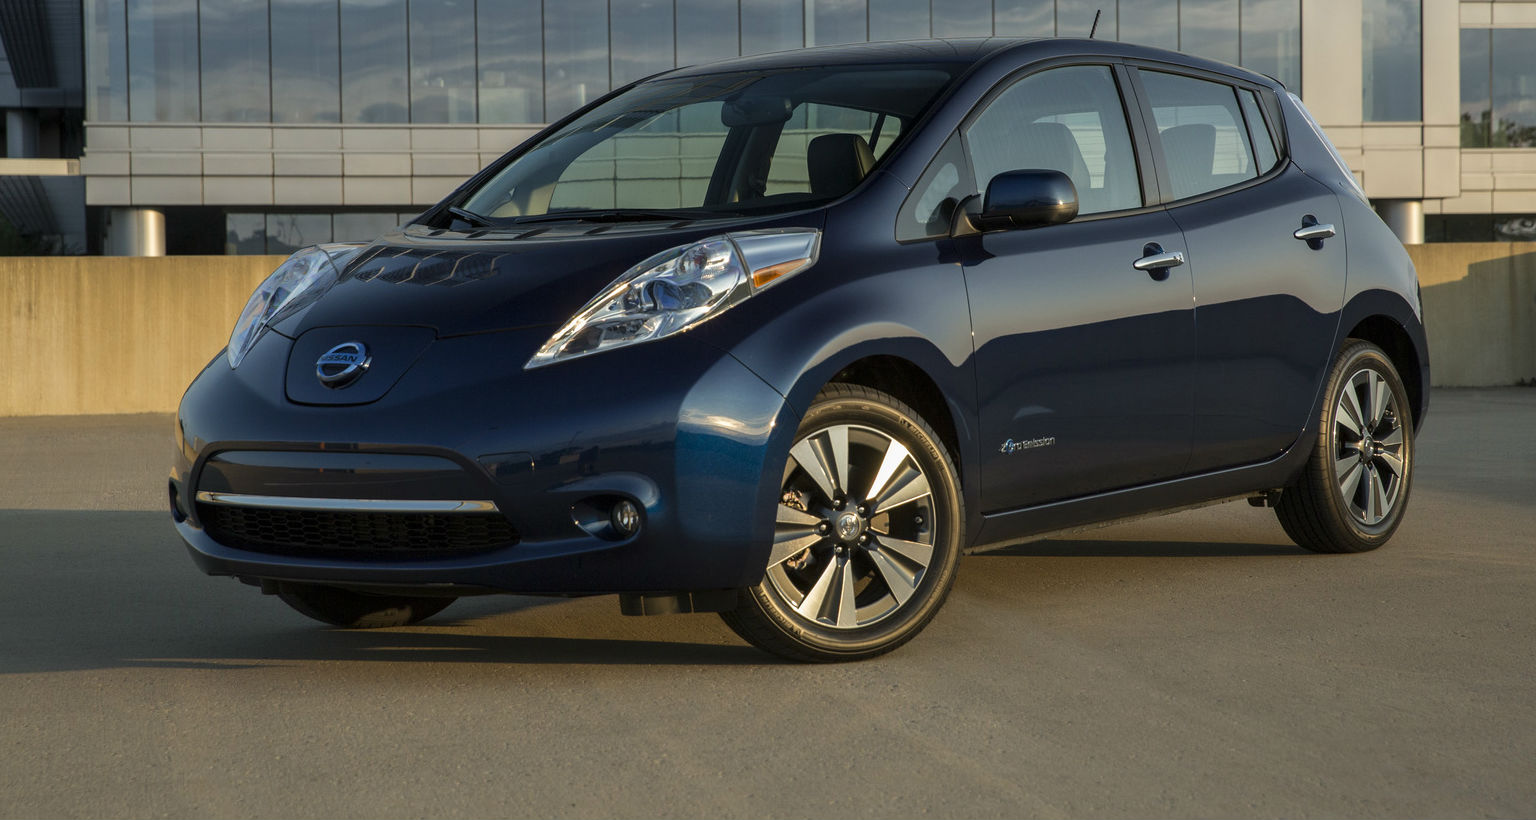 2018 Nissan Leaf To Match It With Model S - Up To 540Km Of Range